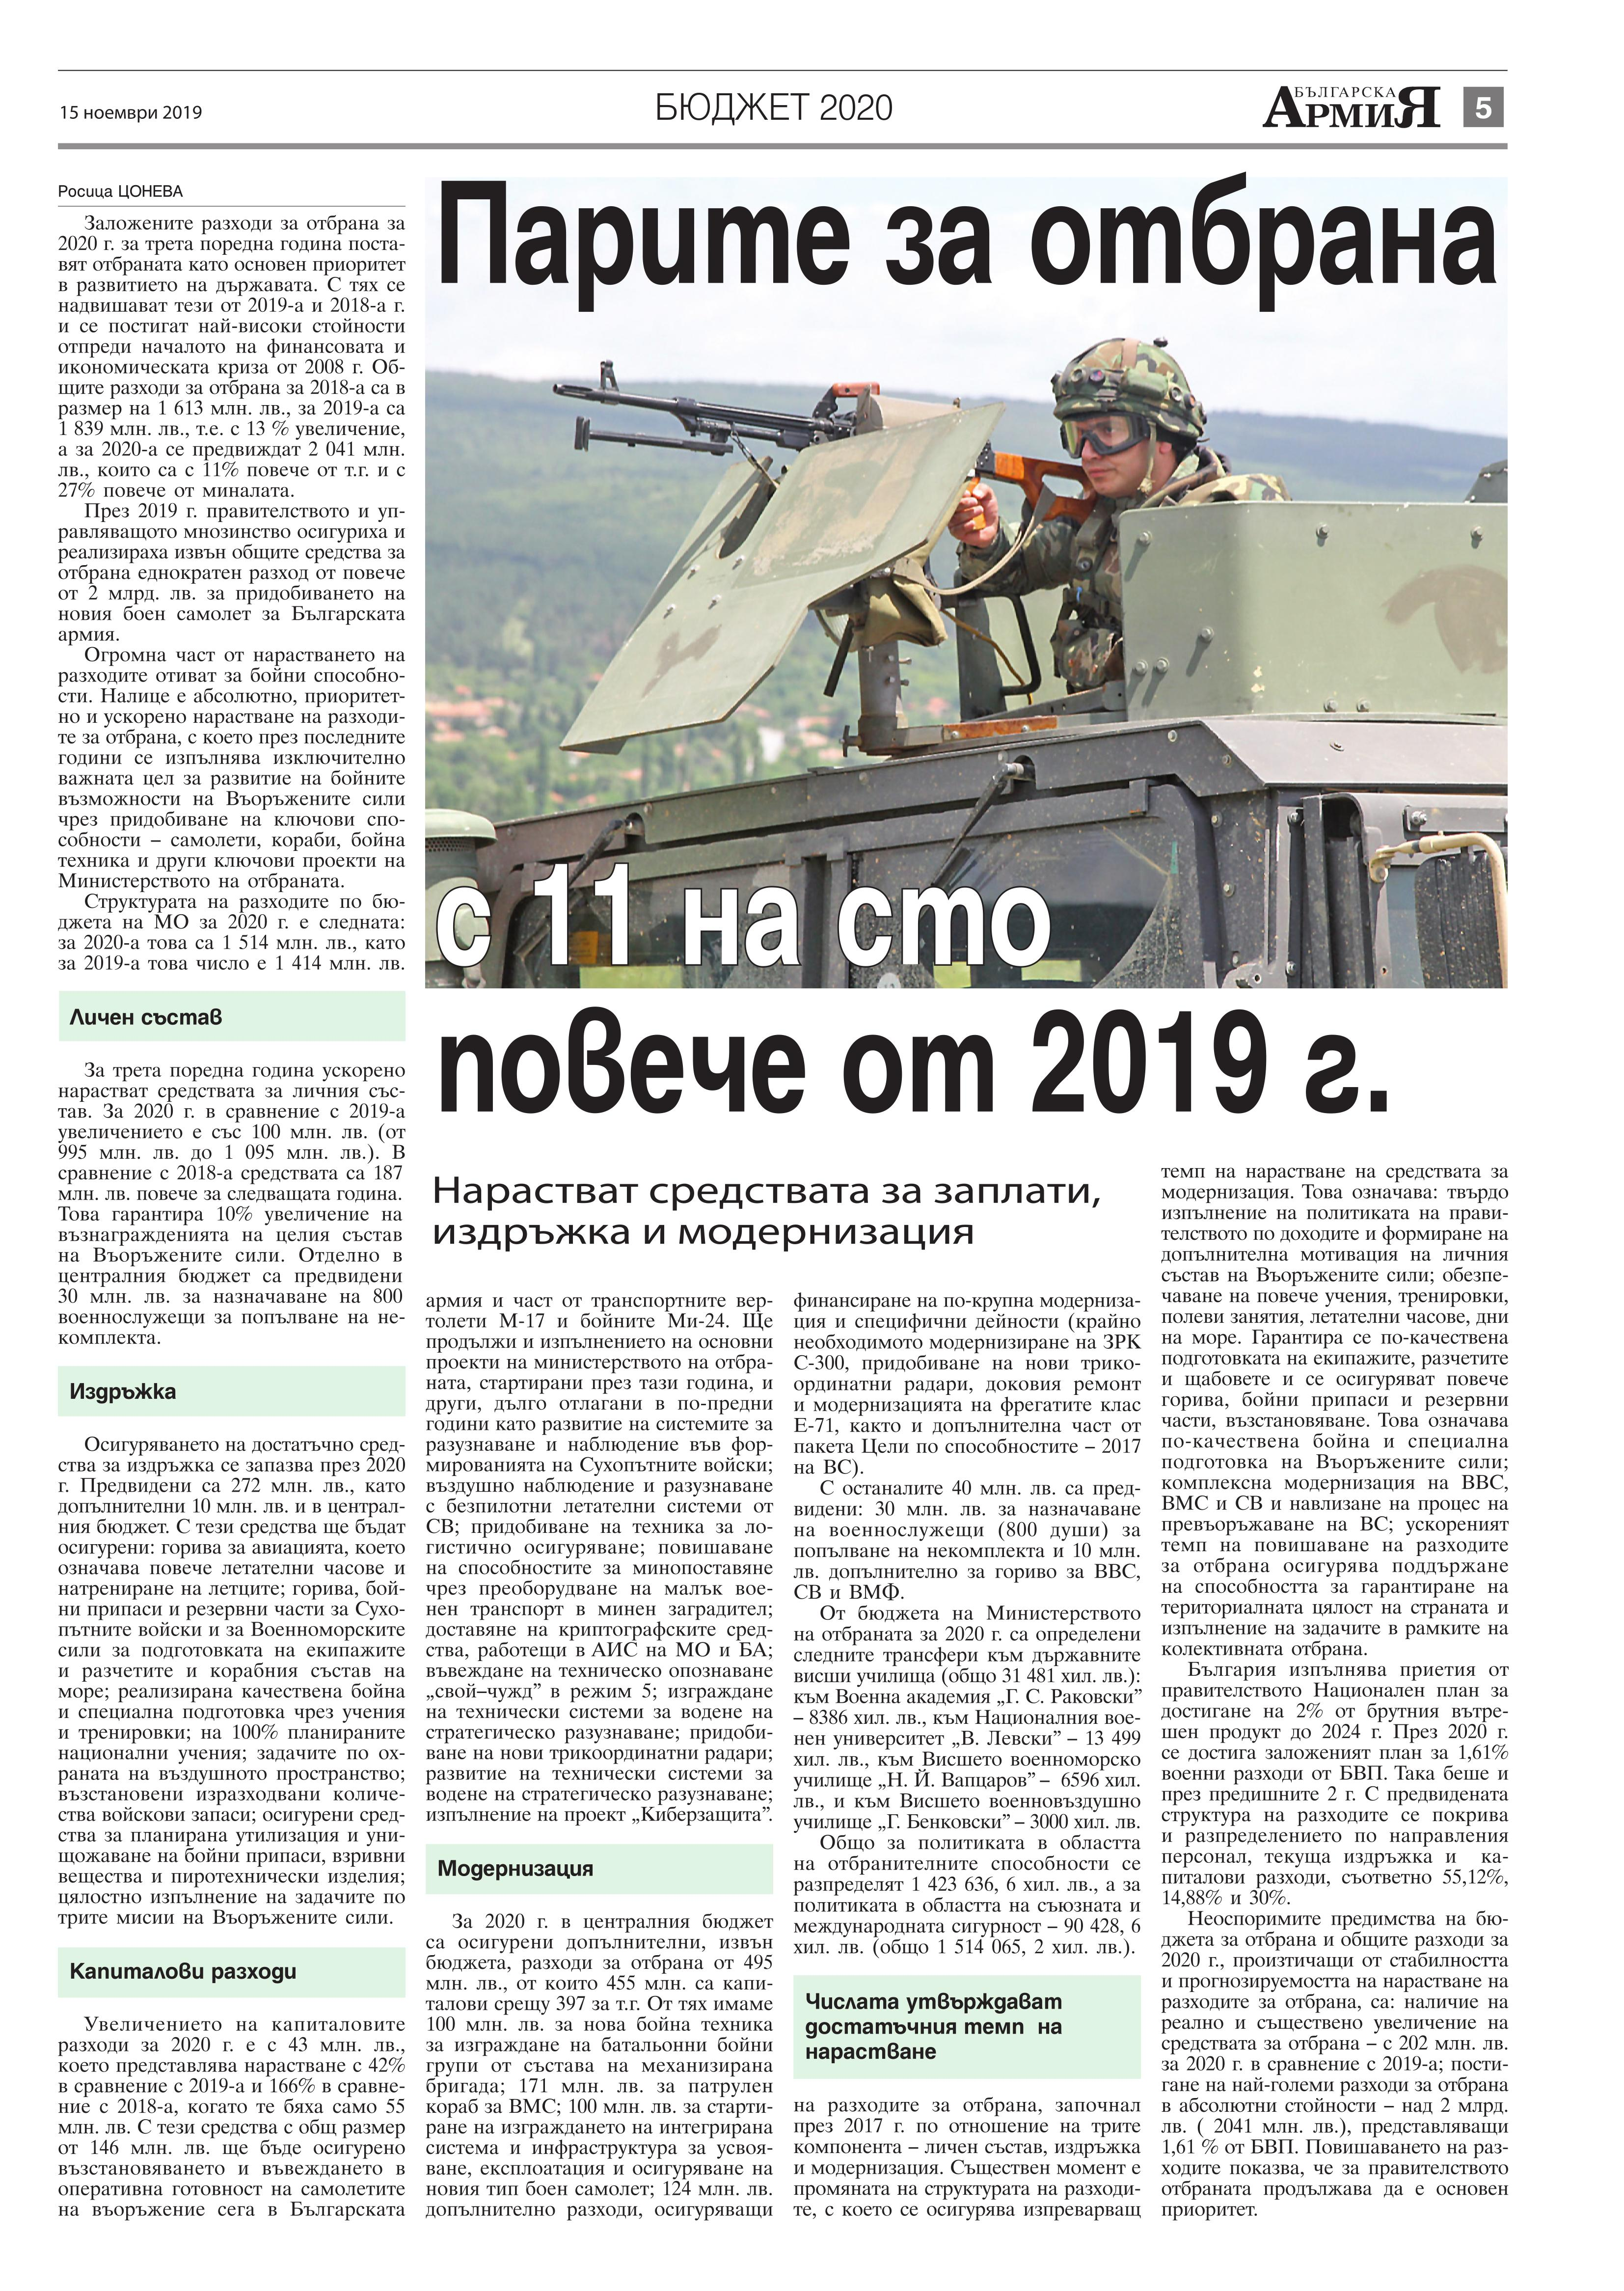 https://www.armymedia.bg/wp-content/uploads/2015/06/05.page1_-112.jpg